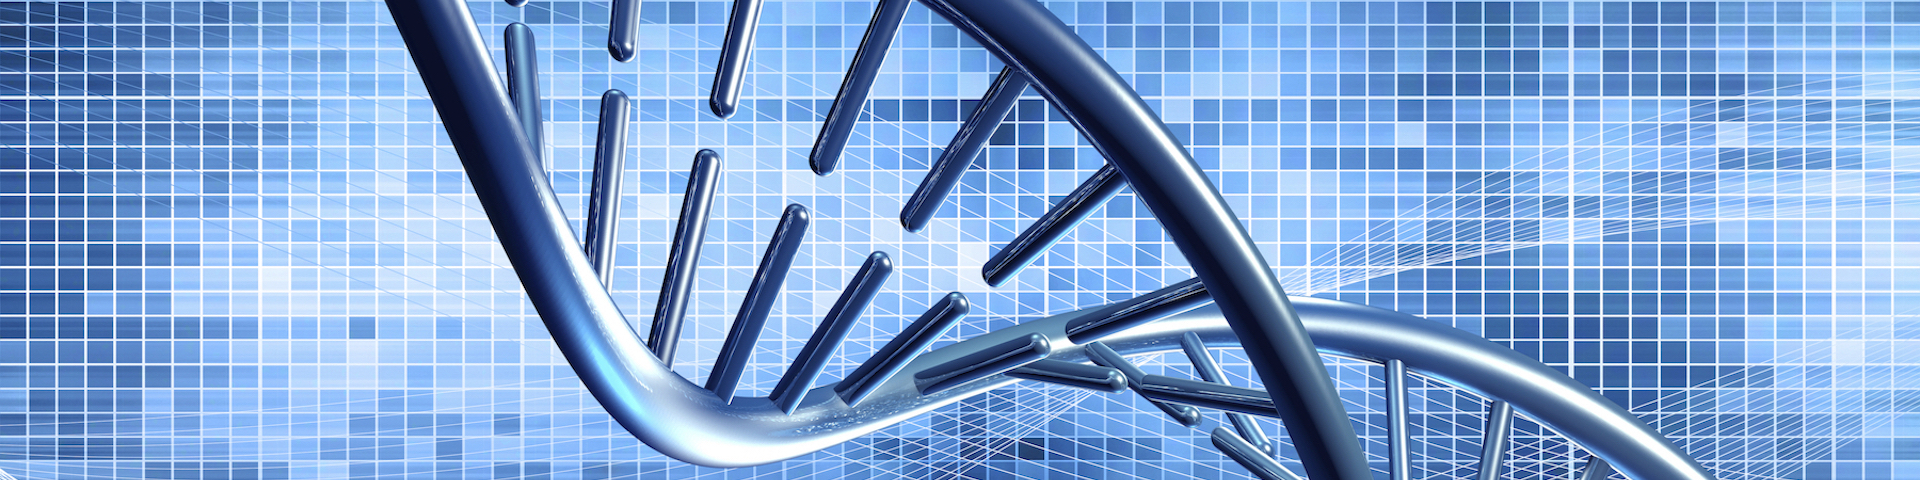 Bioinformatics Market Insights, New Project Investment and Potential Growth Scope 2026